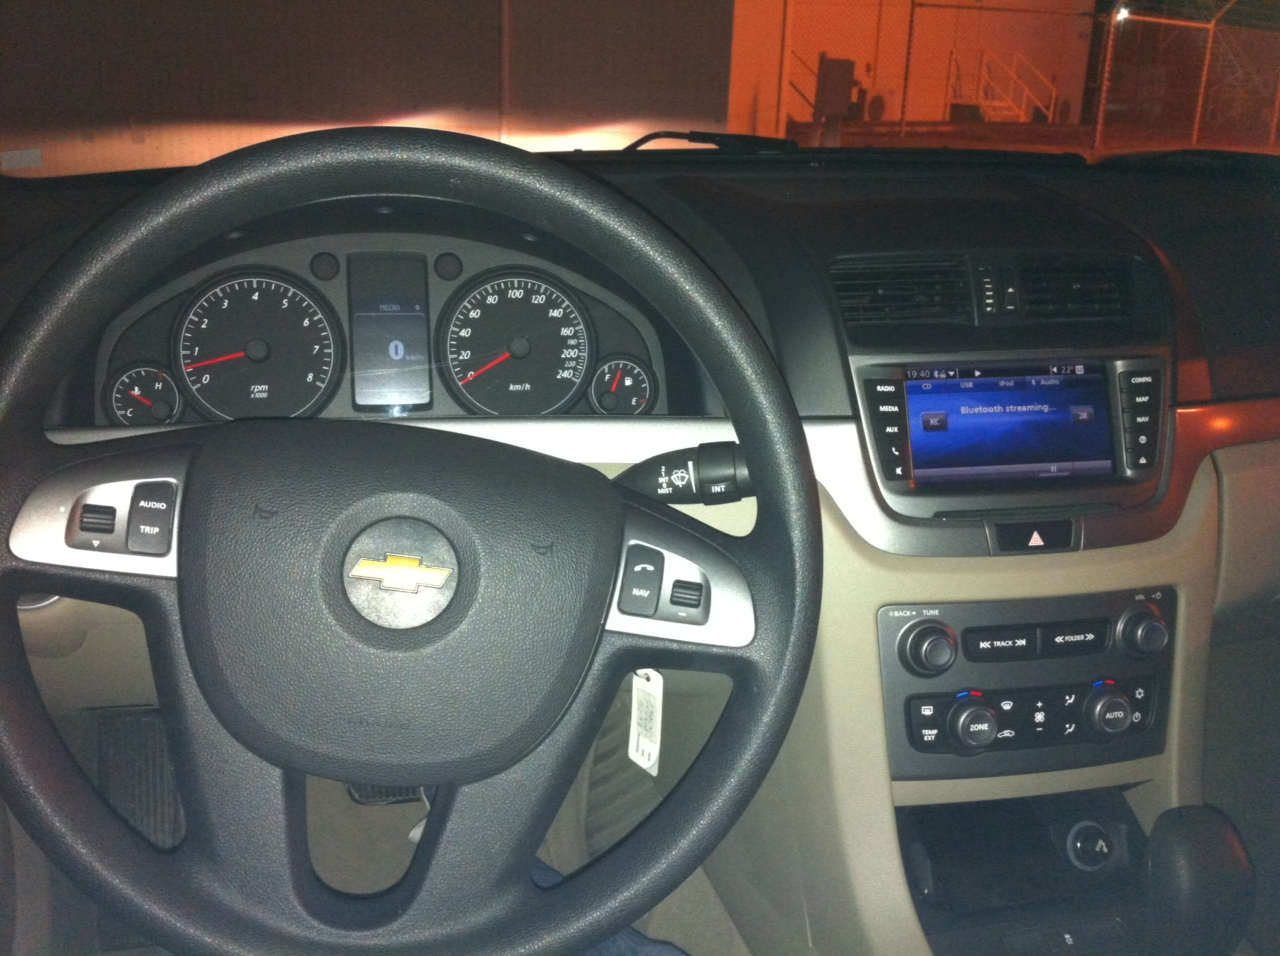 All Chevy chevy caprice 2013 : Capsule Review - 2011 Holden Commodore, Pontiac G8, Chevy SS ...